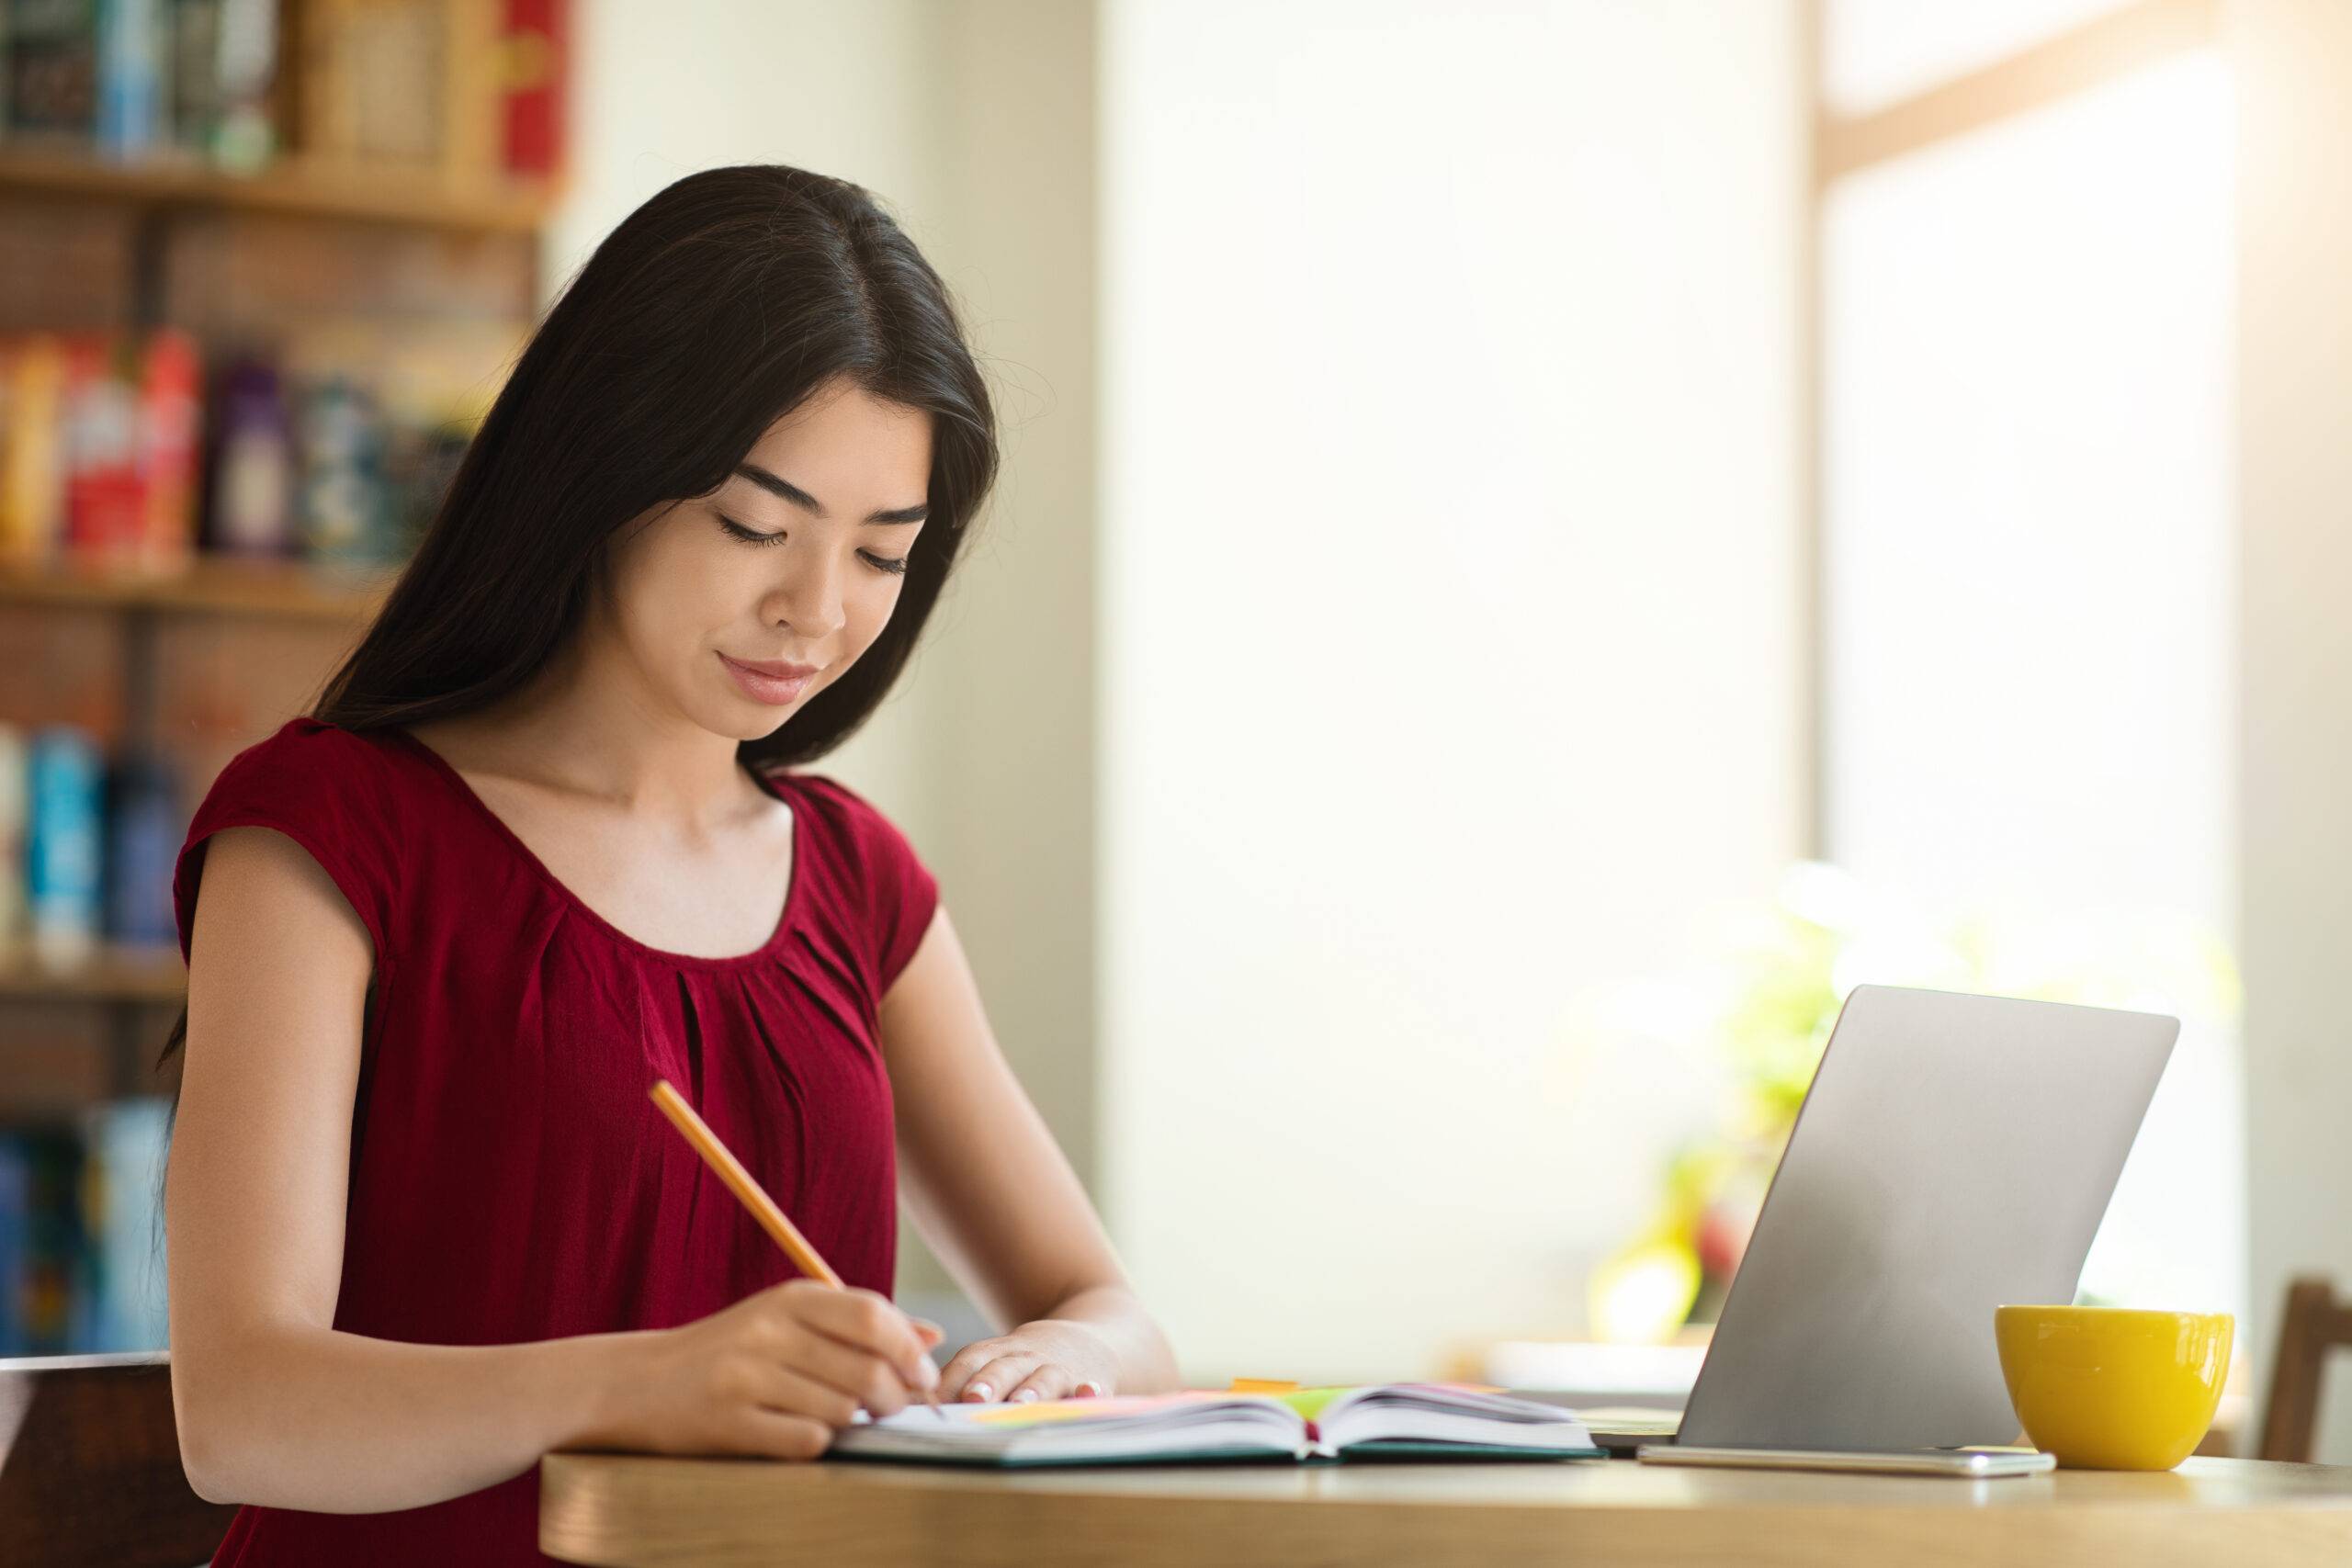 Beautiful Asian Student Girl Studying With Laptop In Cafe And Taking Notes